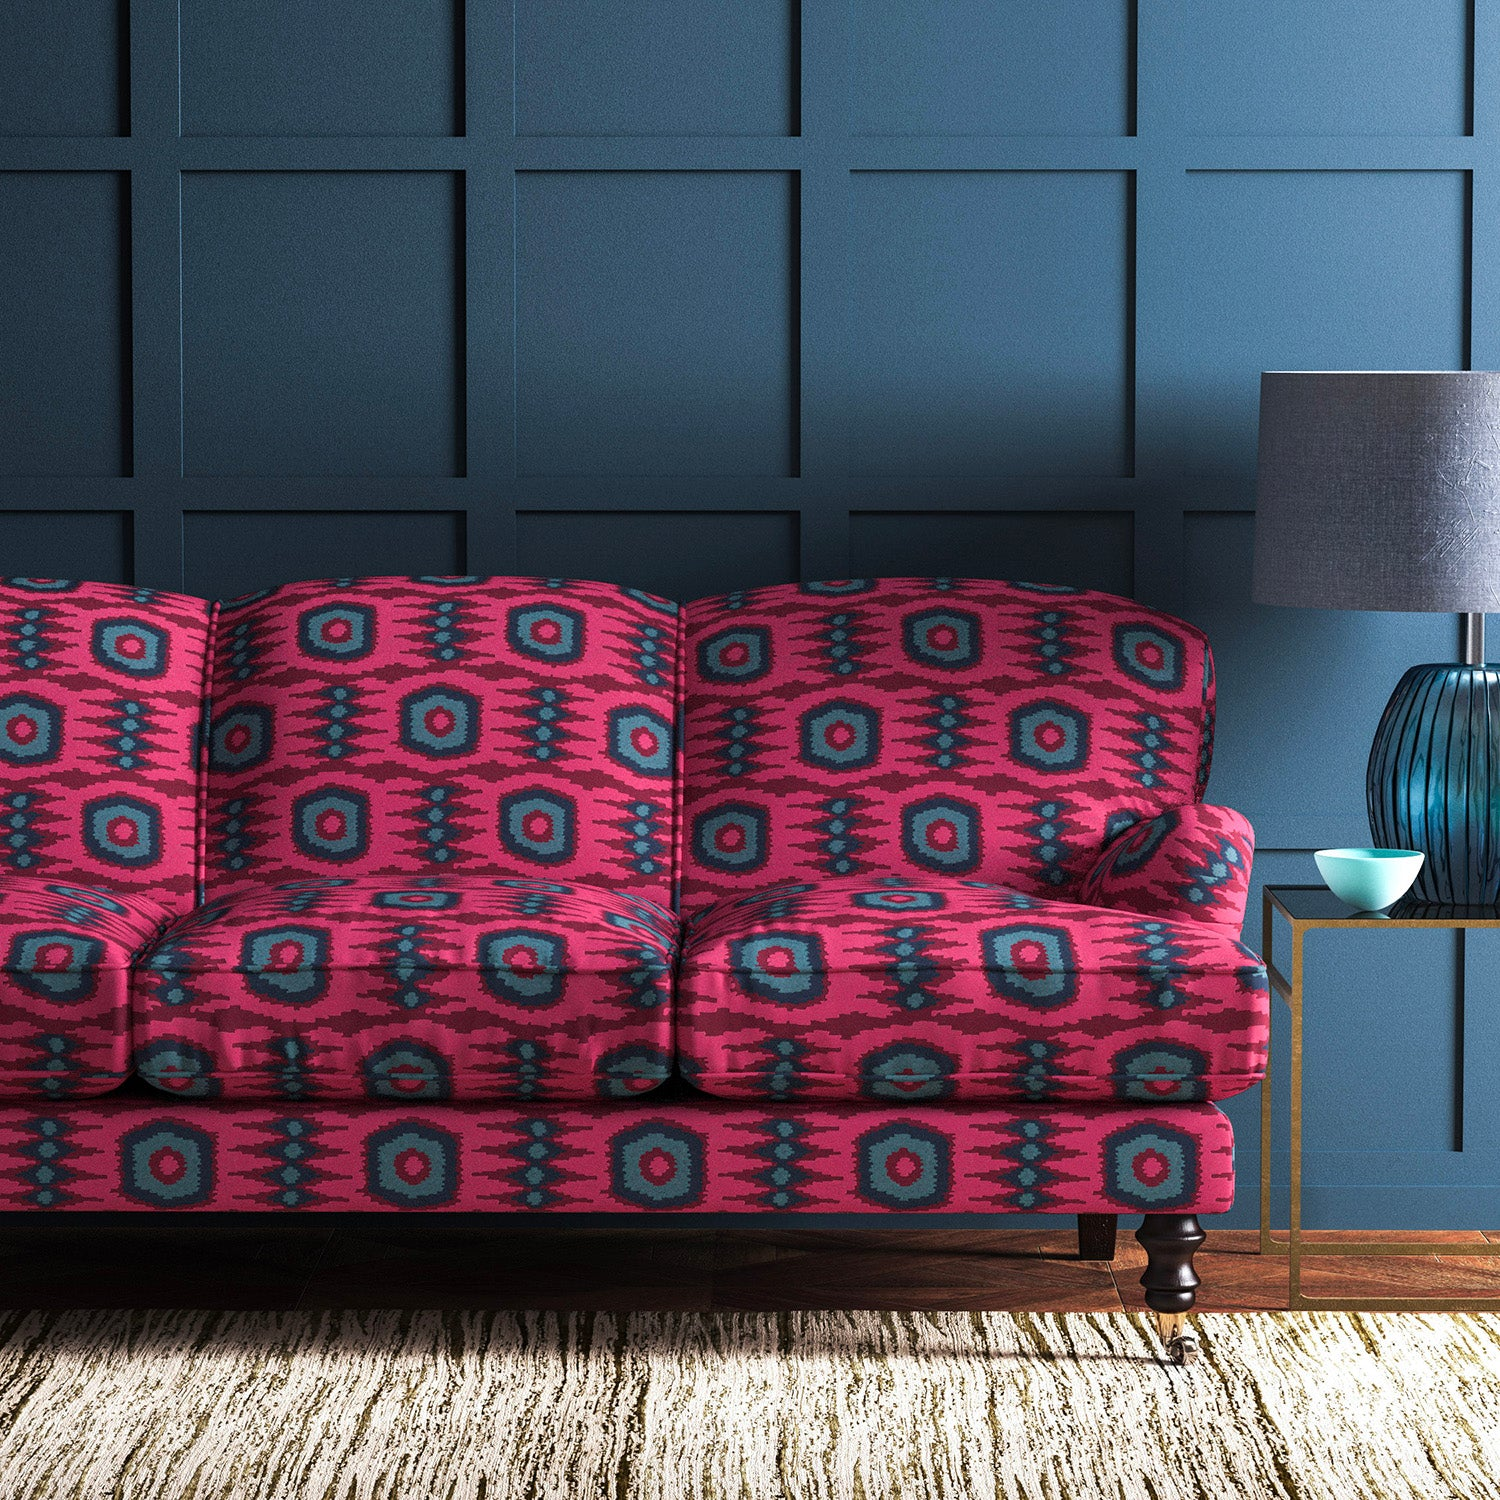 Velvet sofa upholstered in a pink and blue velvet upholstery fabric with abstract print and stain resistant finish